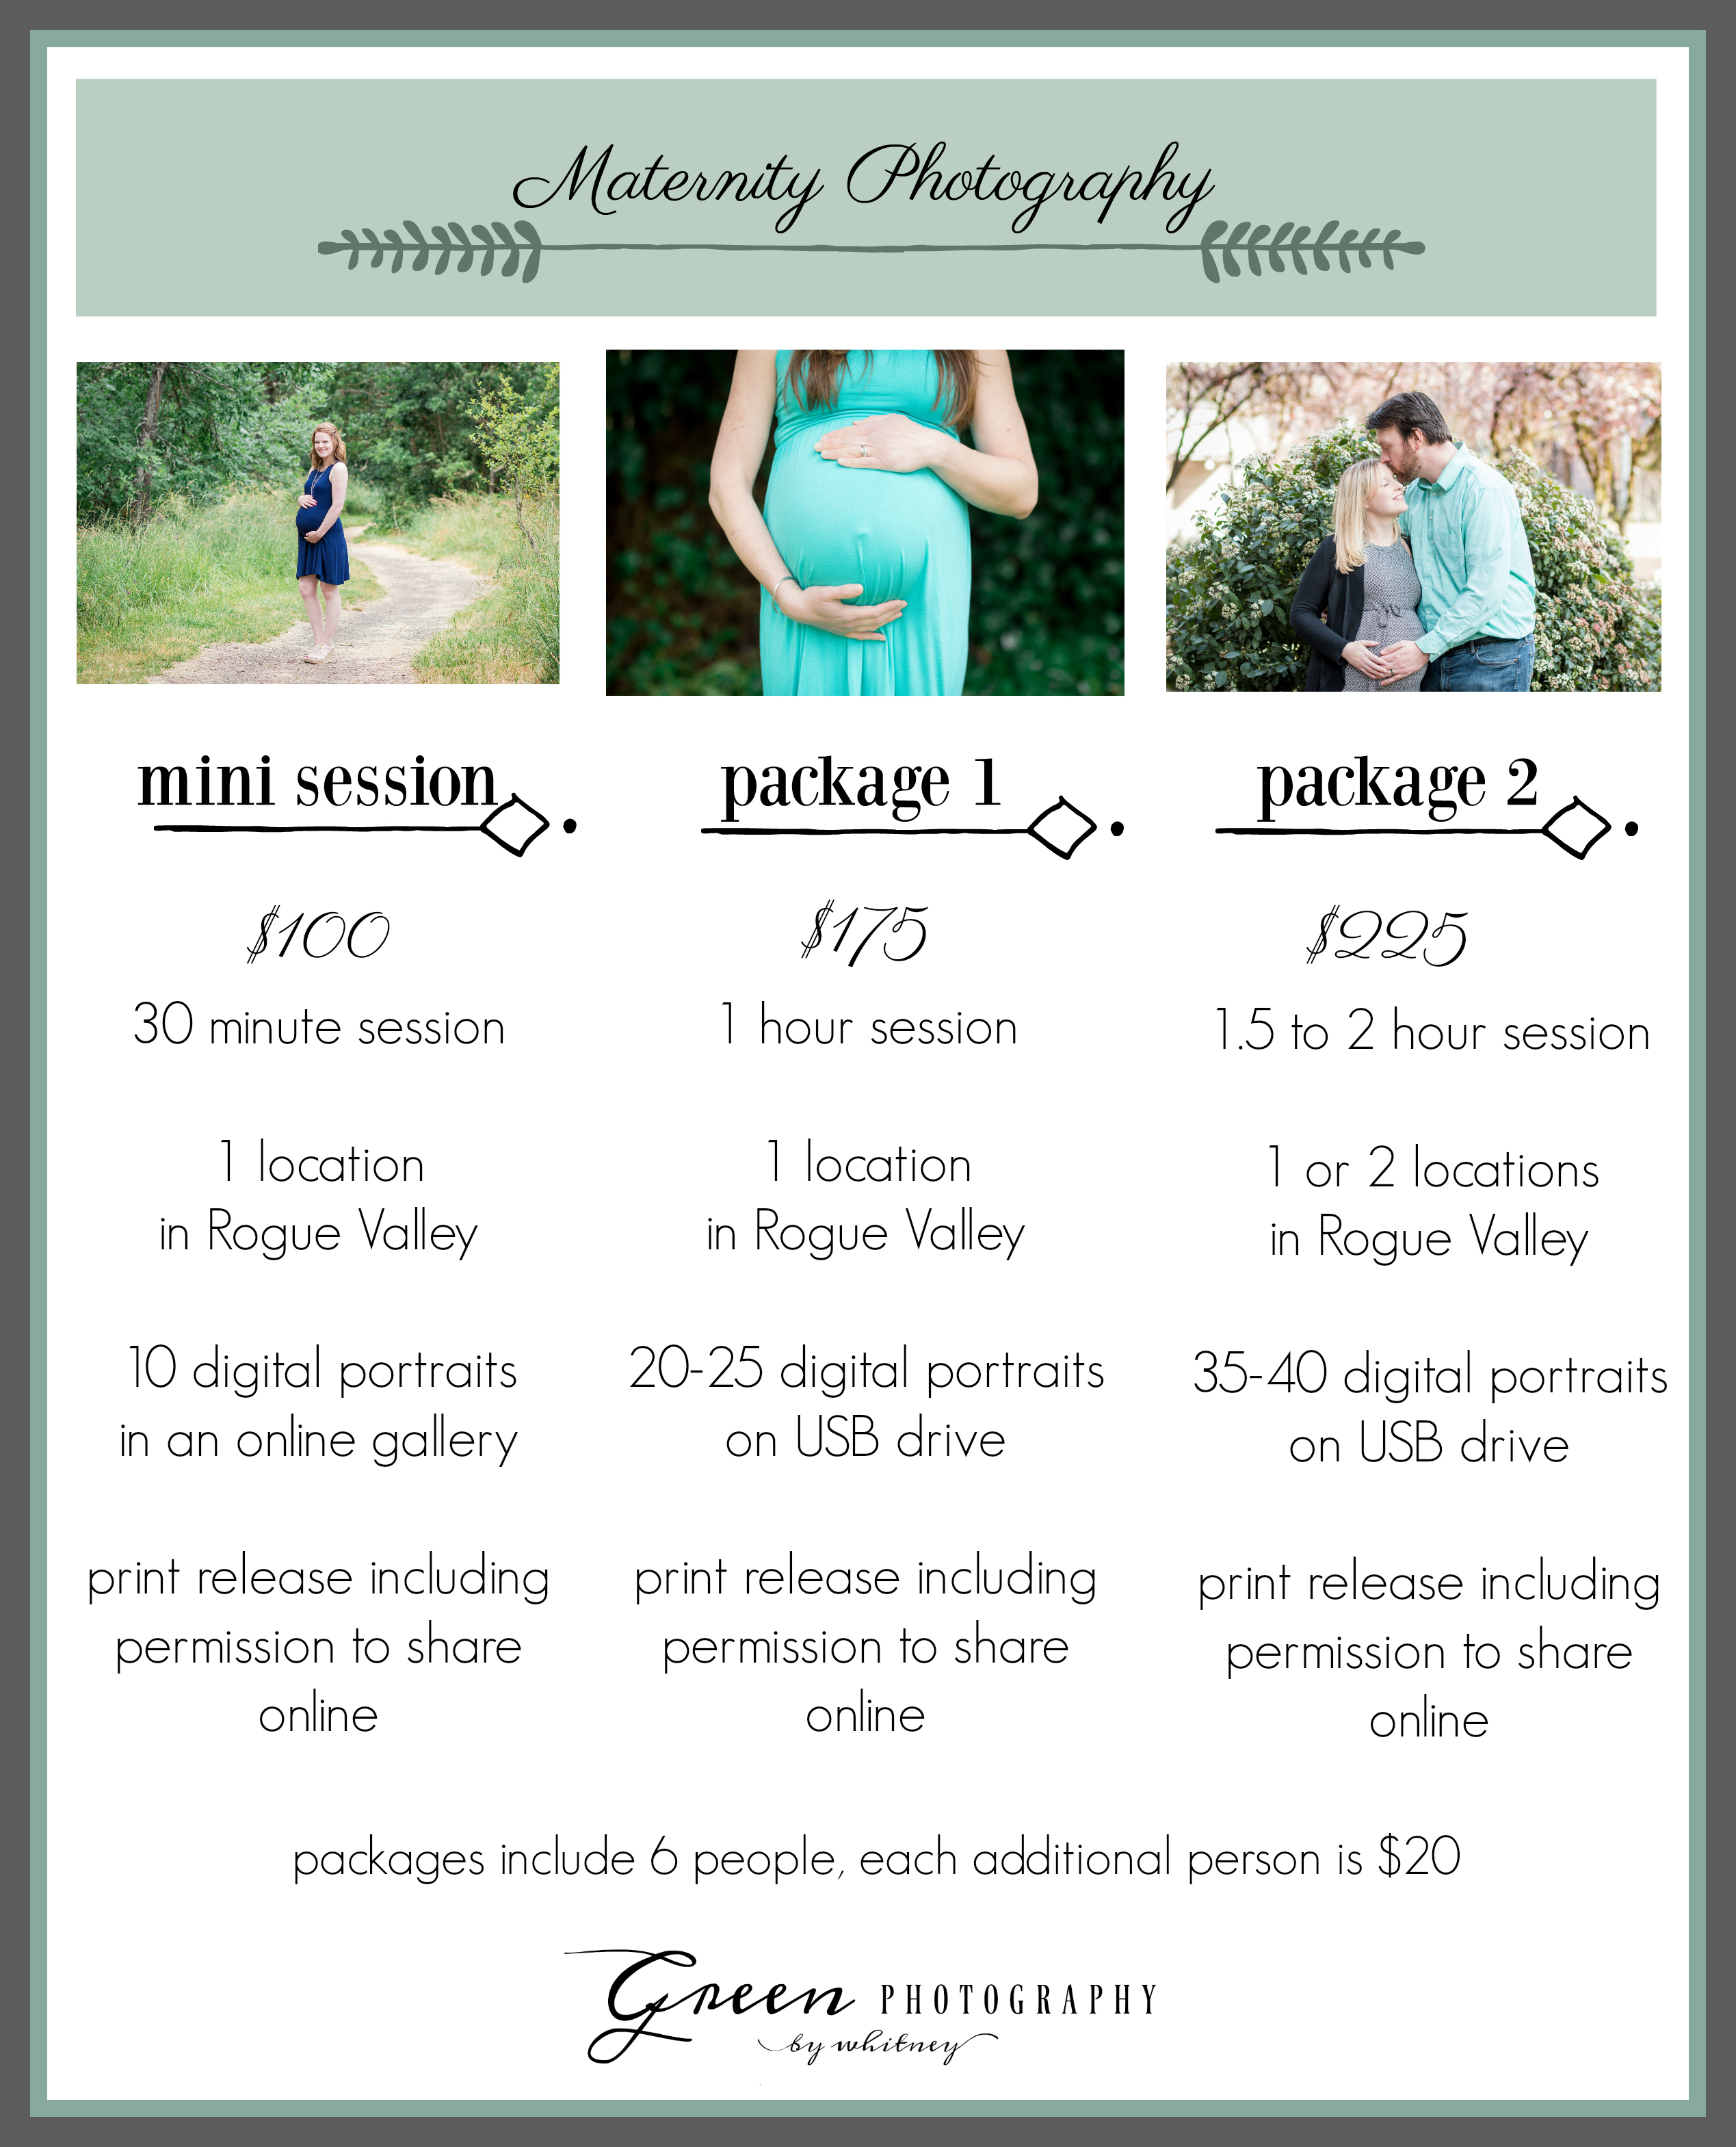 Maternity newborn portrait sessions southern oregon photographer with a passion for capturing beauty and memories one photograph at a time